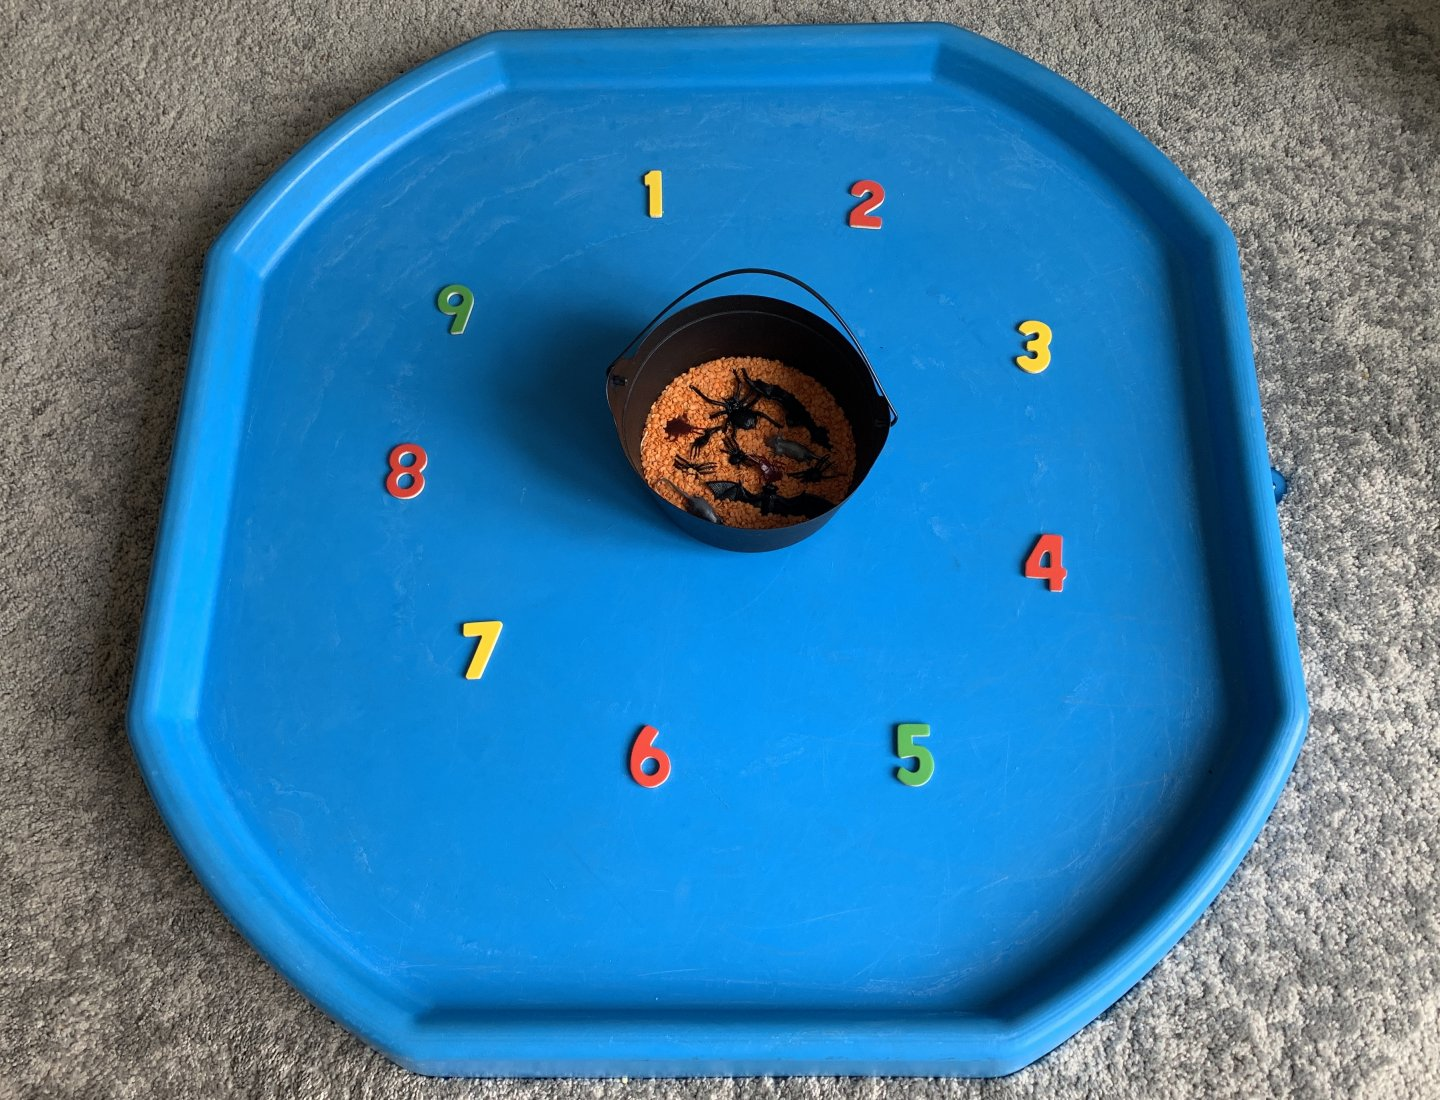 A wide shot of a blue tuff spot with a black plastic cauldron in the centre, filled with orange split lentils and plastic creepy crawlies, and surrounded by the numbers 1-9 arranged in a circle, in numerical order.